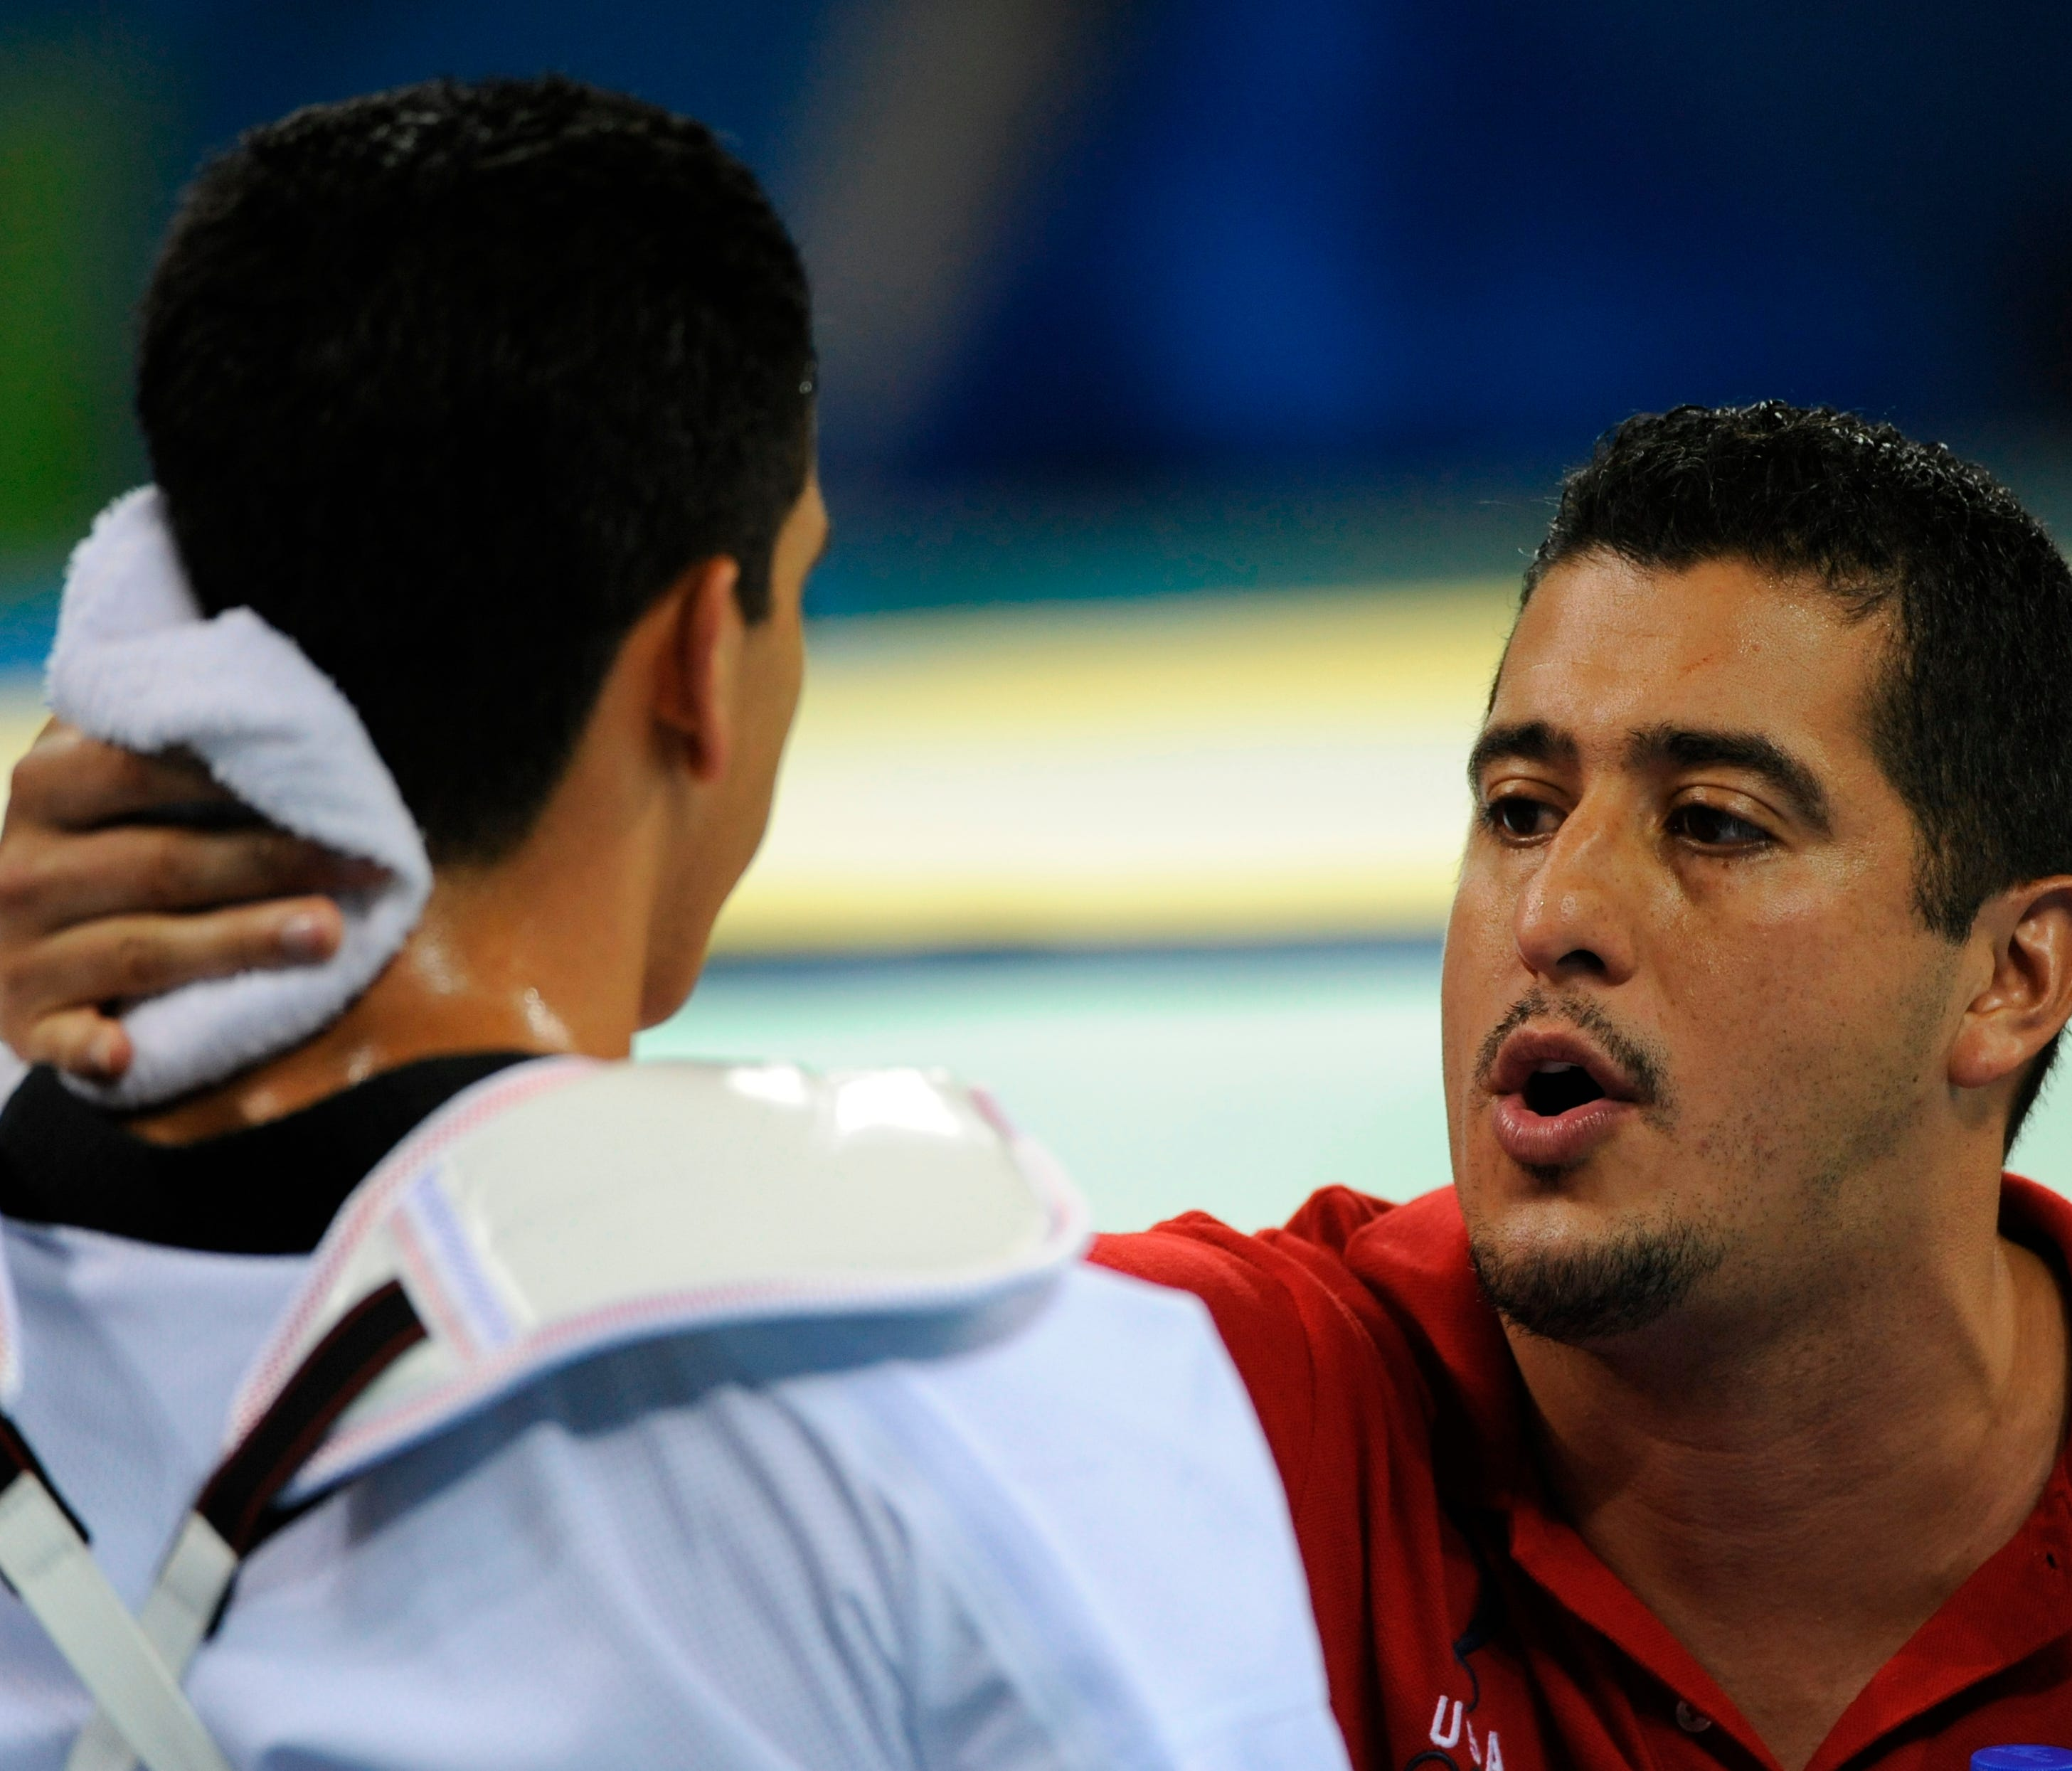 Jean Lopez, shown during the 2008 Olympics, has been banned by the U.S. Center for SafeSport for sexual misconduct.